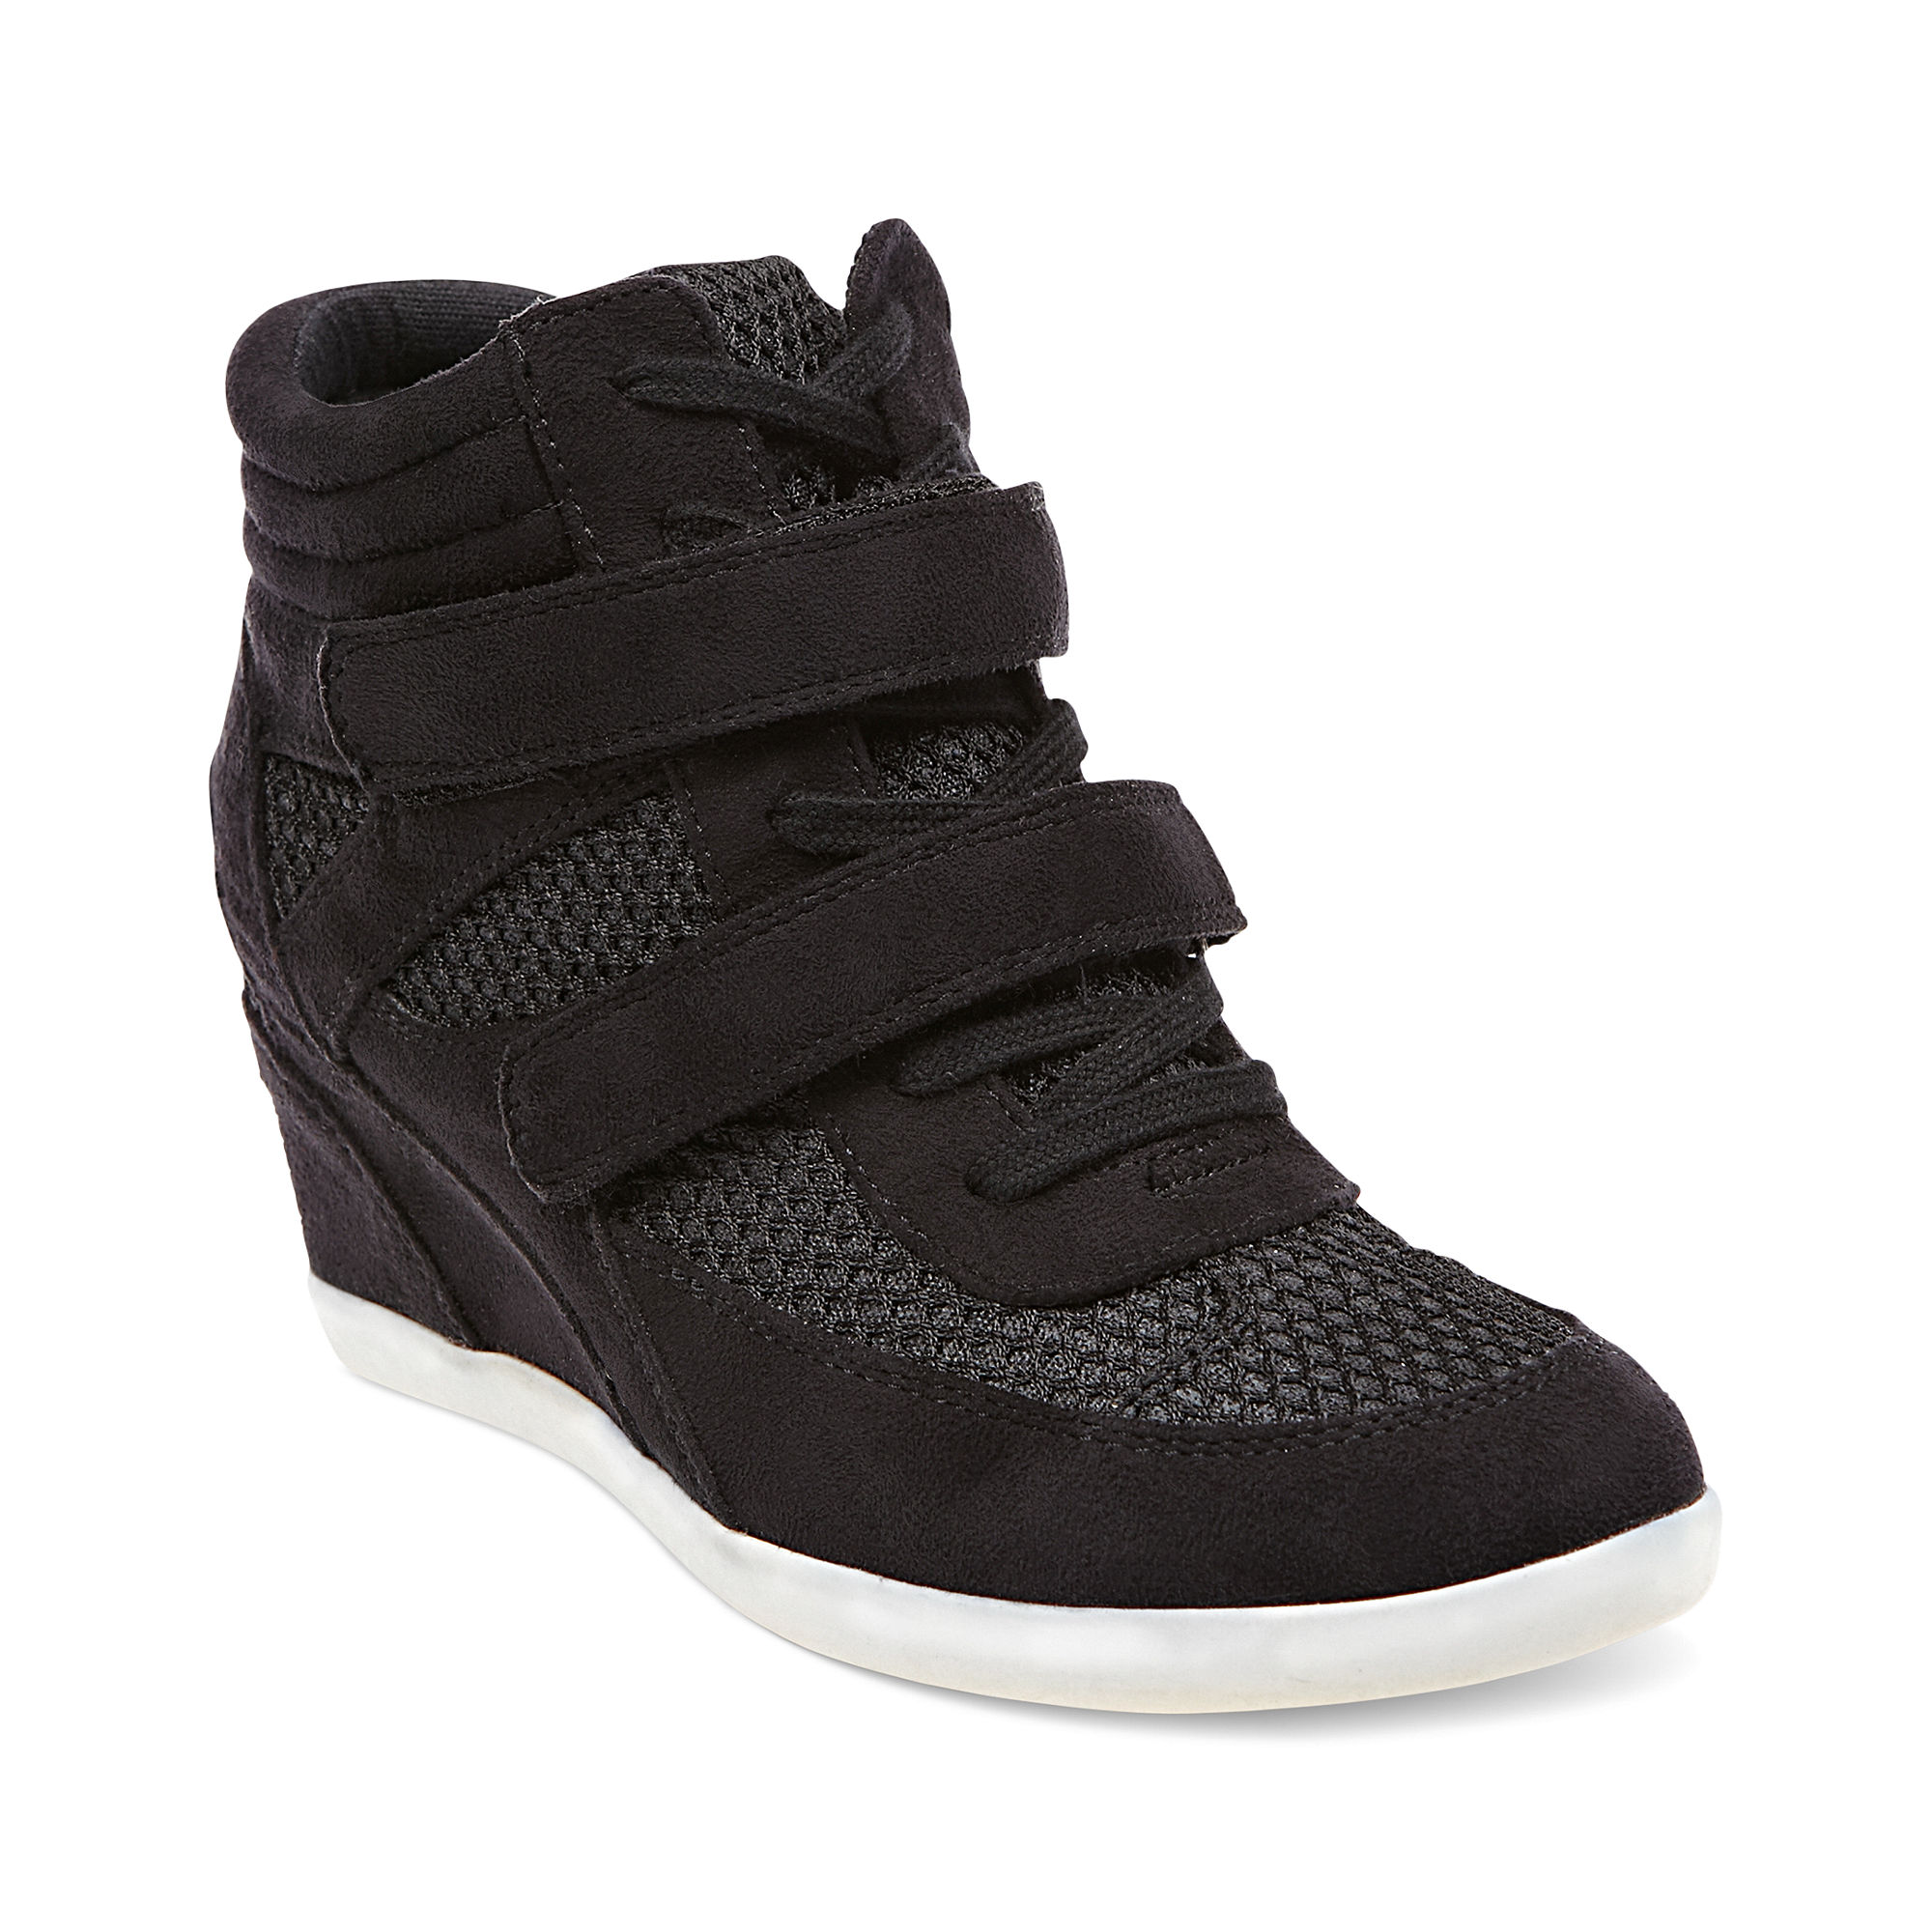 64a97fe19c9 Lyst - Madden Girl Hickory Wedge Sneakers in Black